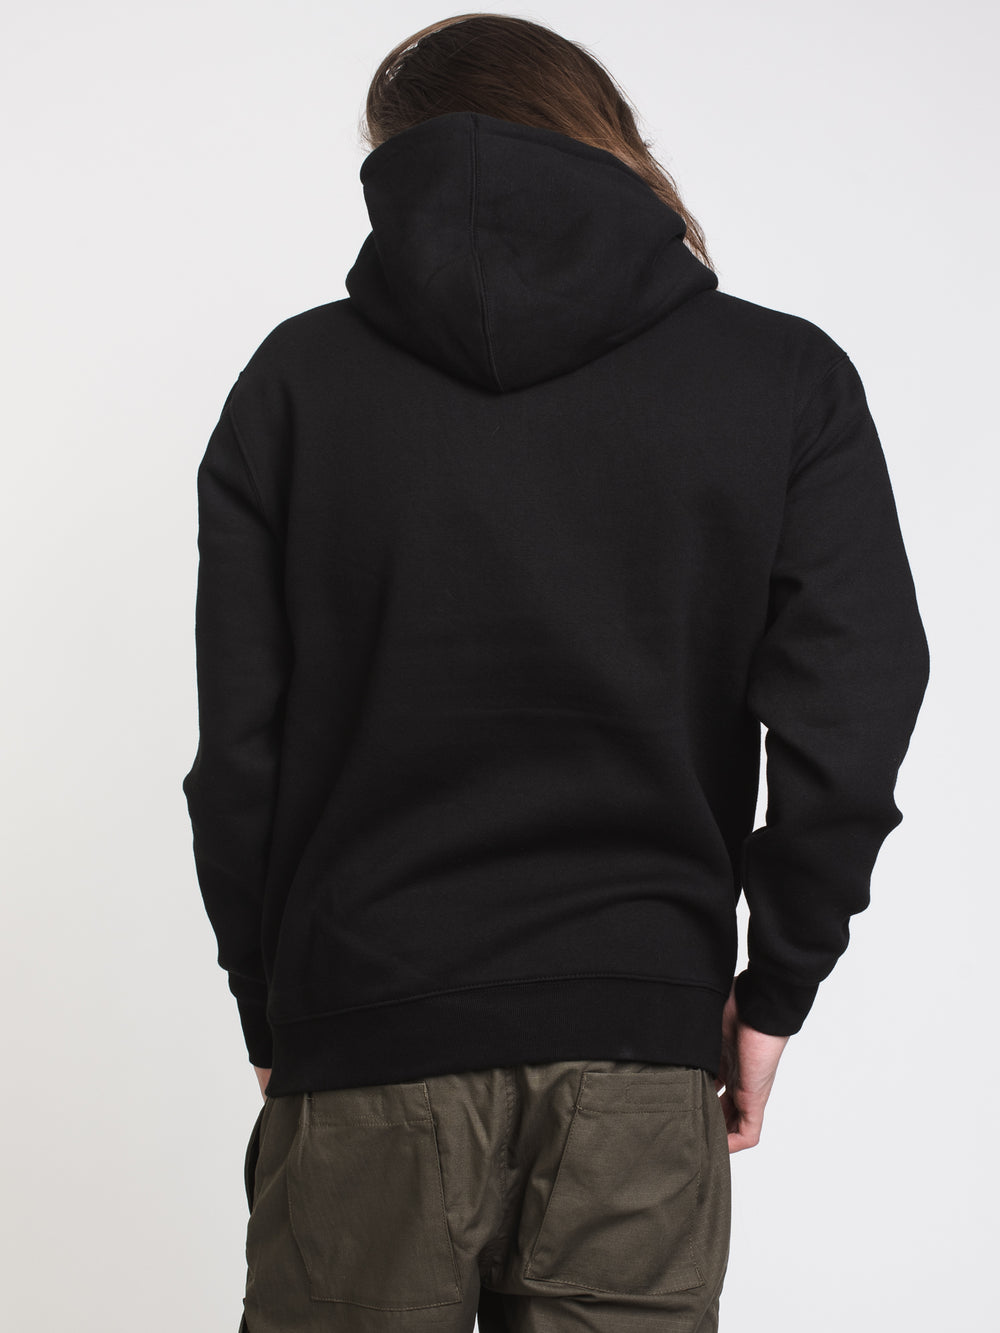 MENS BOX EXCLAMATION PULLOVER HOODIE - BLACK